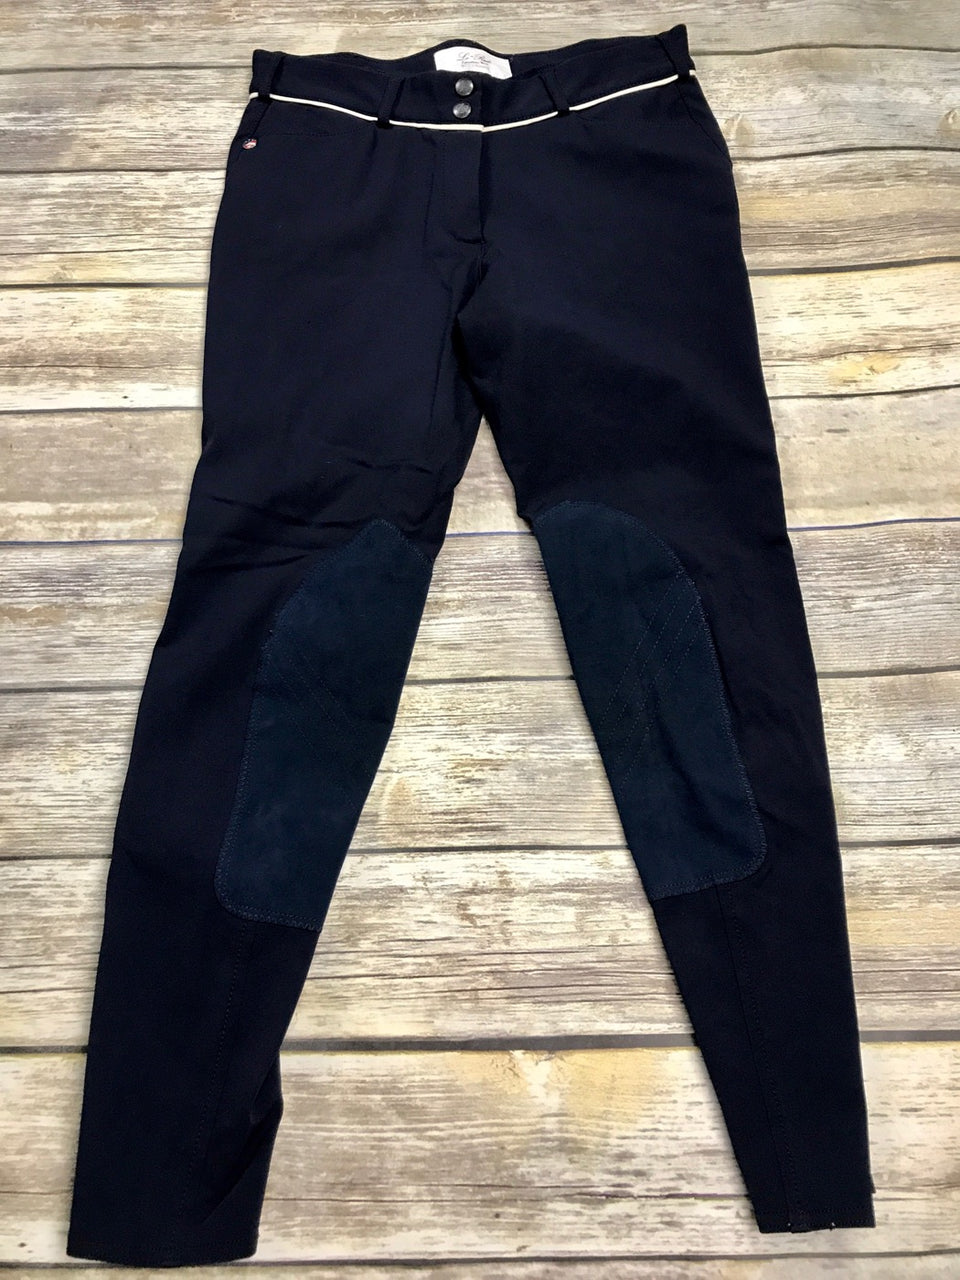 Lo Ride Breeches in Navy w/Cream Piping - Women's 28